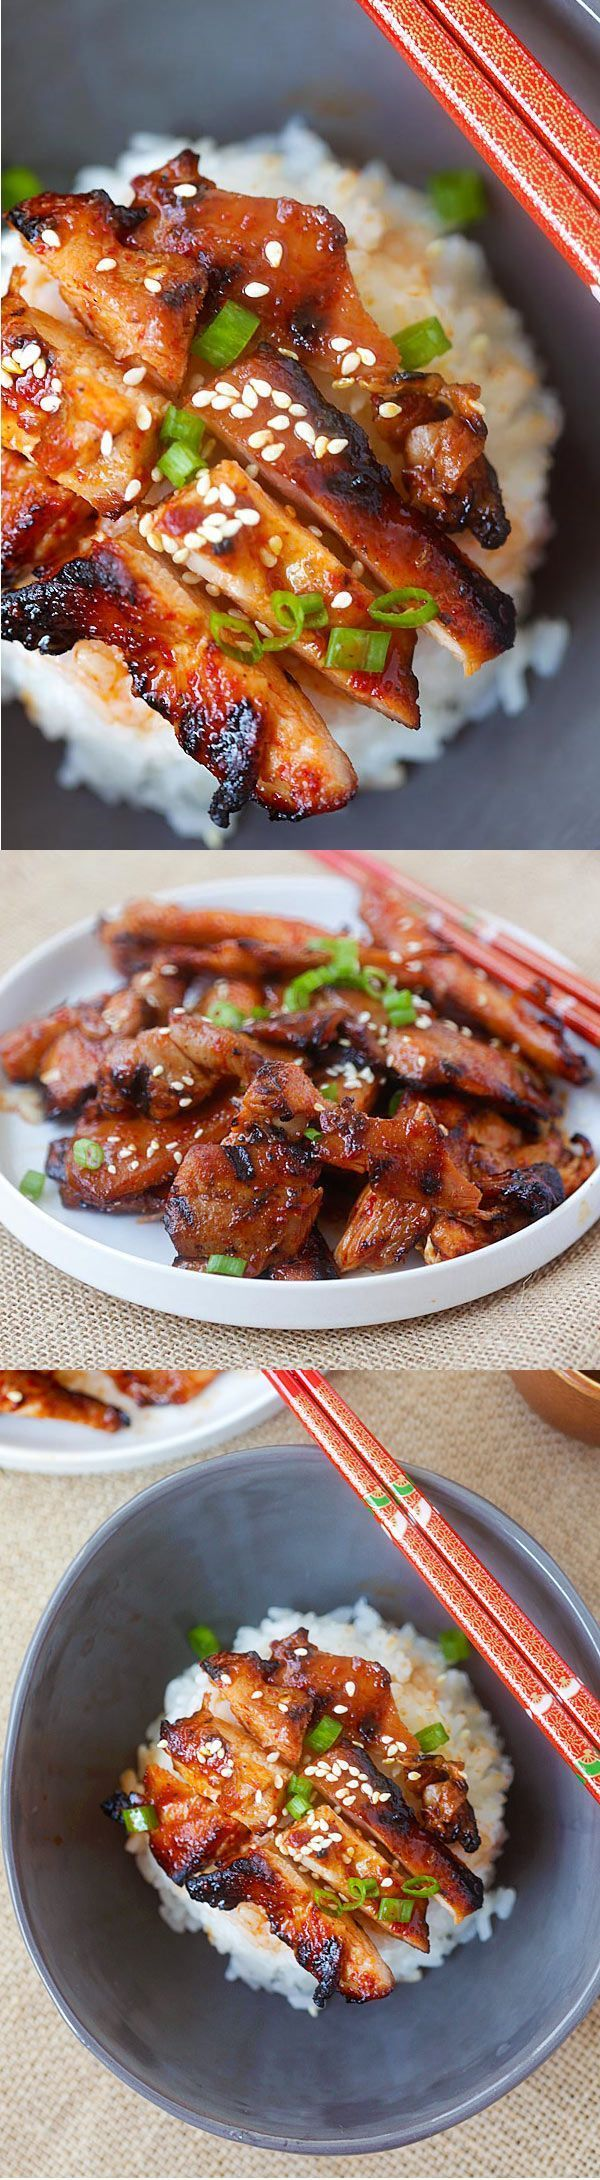 Spicy Korean Chicken – amazing and super yummy chicken with spicy Korean marinade. So easy to make, cheaper, and better than takeout | rasamalaysia.com